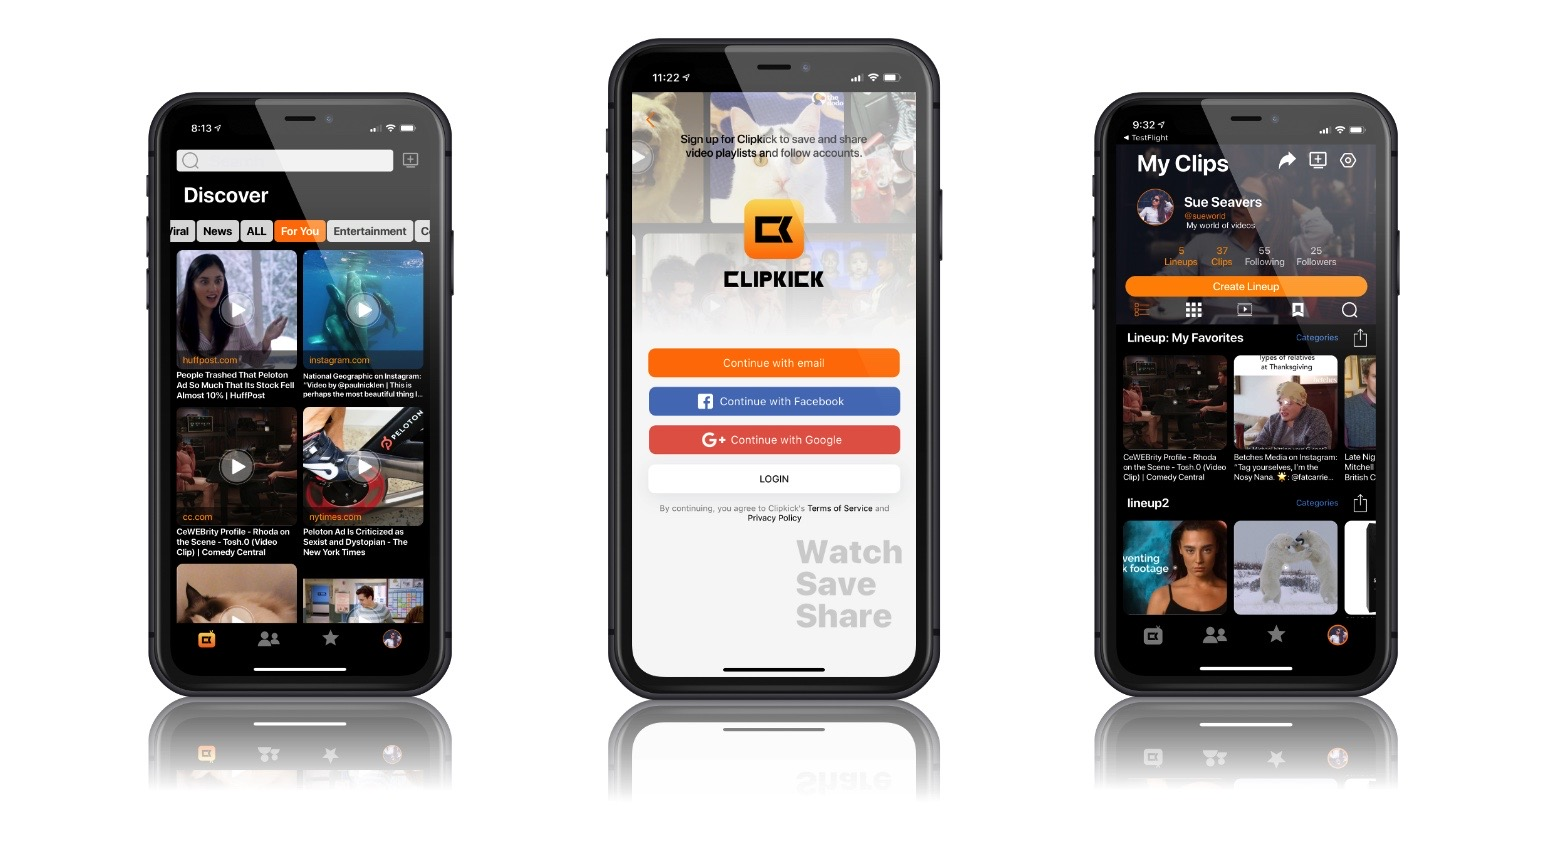 How to make a video playlist on your phone with CLIPKICK